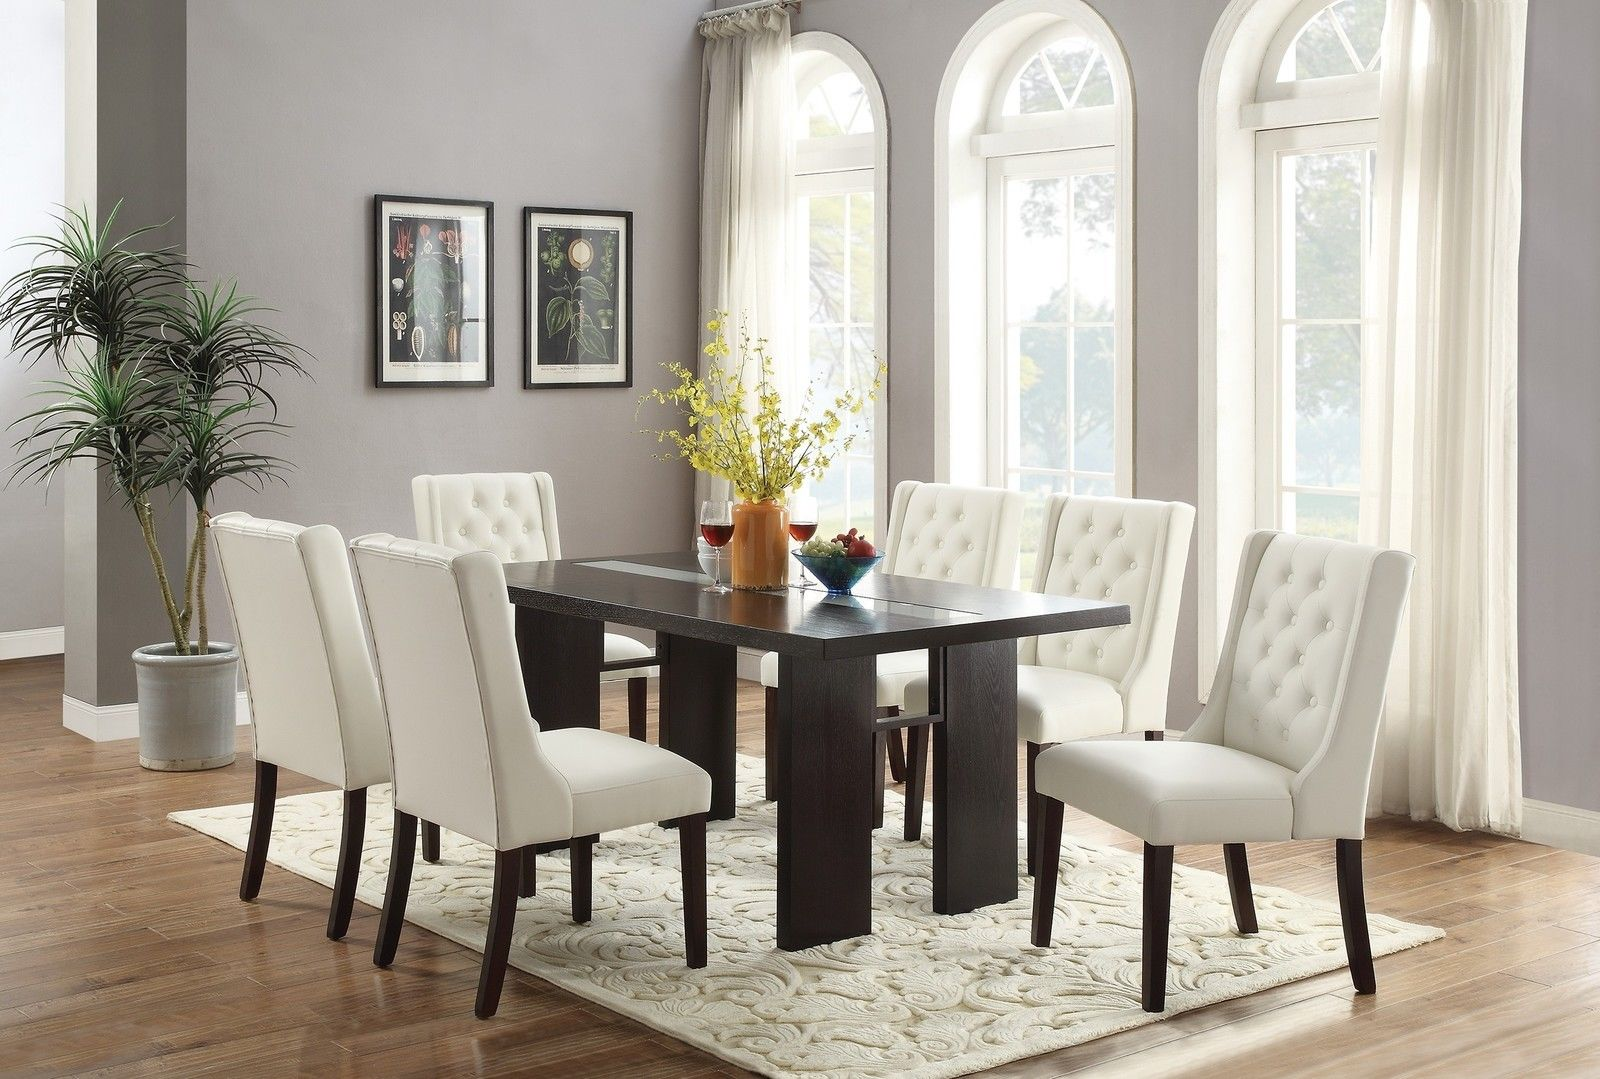 Astonishing 7Pc Espresso Or White Parson Style Soft Cushion Chair Dark Brown Table Dining Set Caraccident5 Cool Chair Designs And Ideas Caraccident5Info